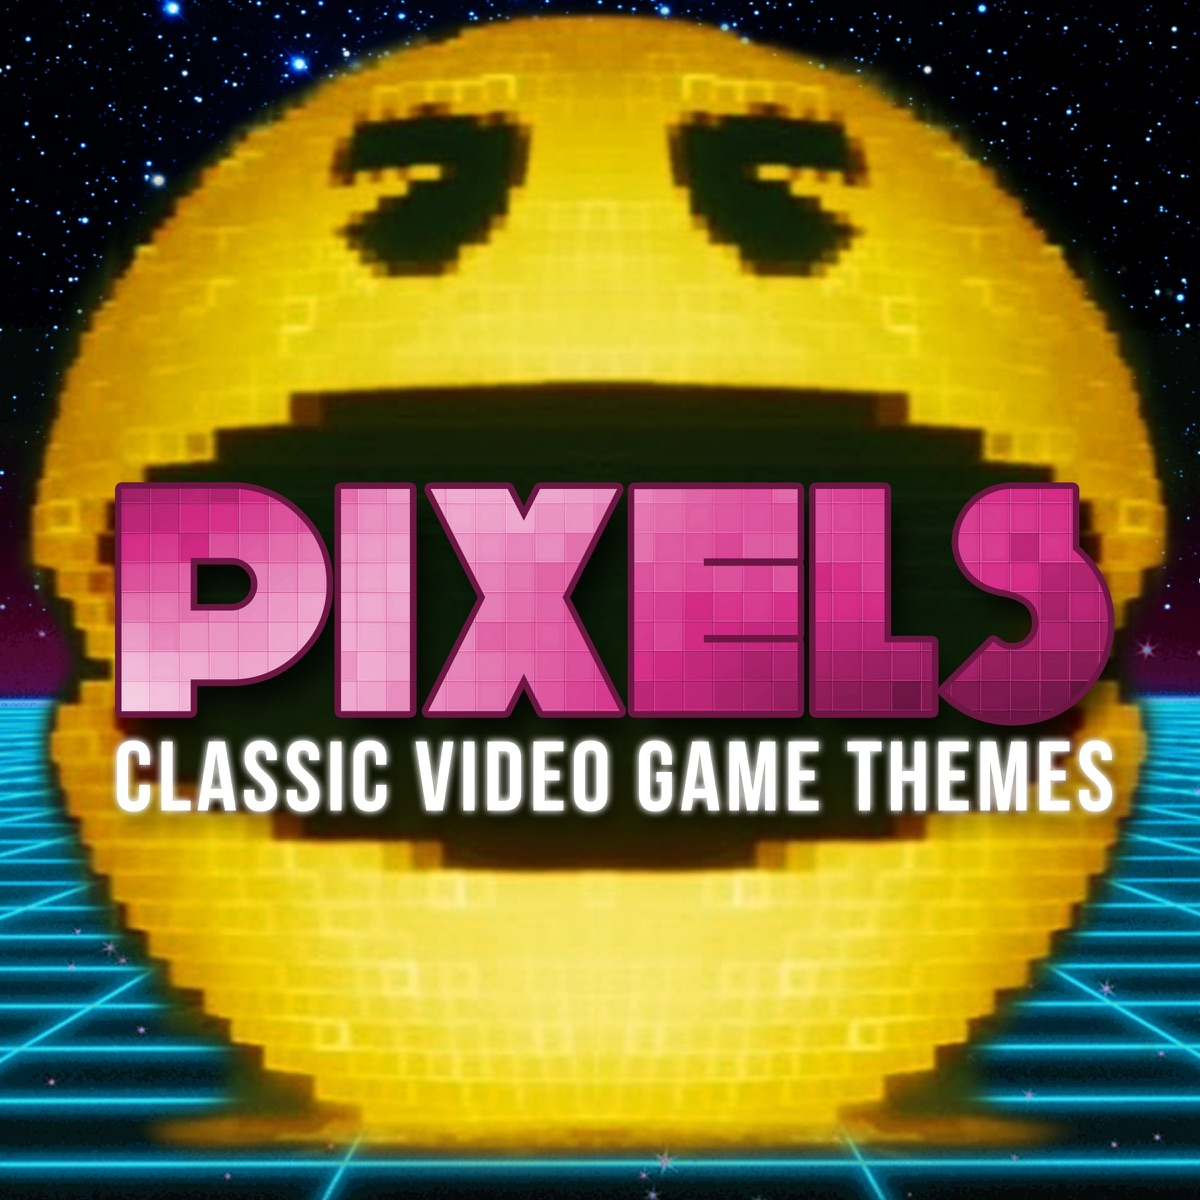 PIXELS - Retro Video Game Themes Album Cover by The Video Game Music